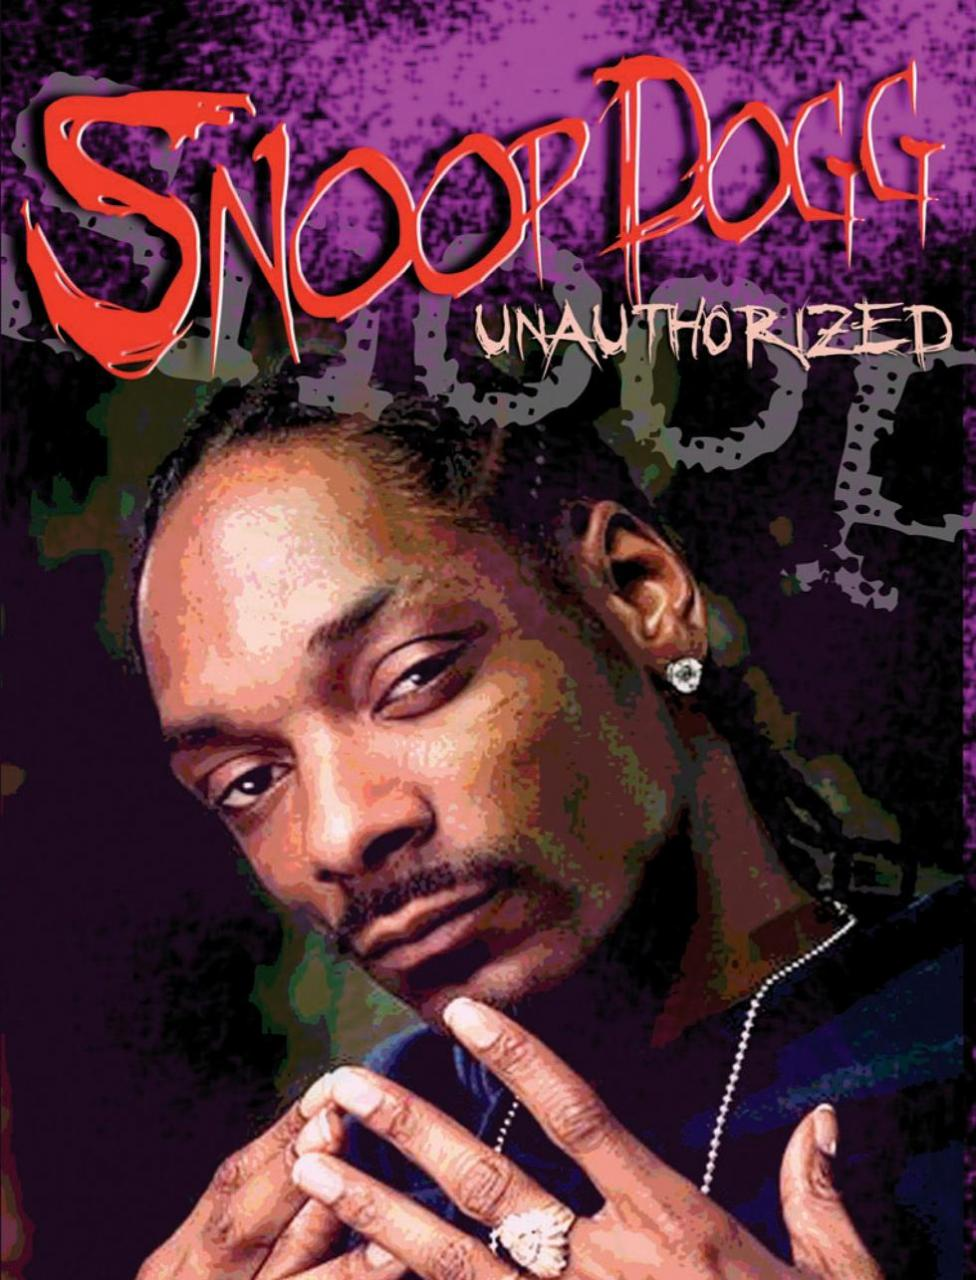 Snoop Dogg Unauthorized